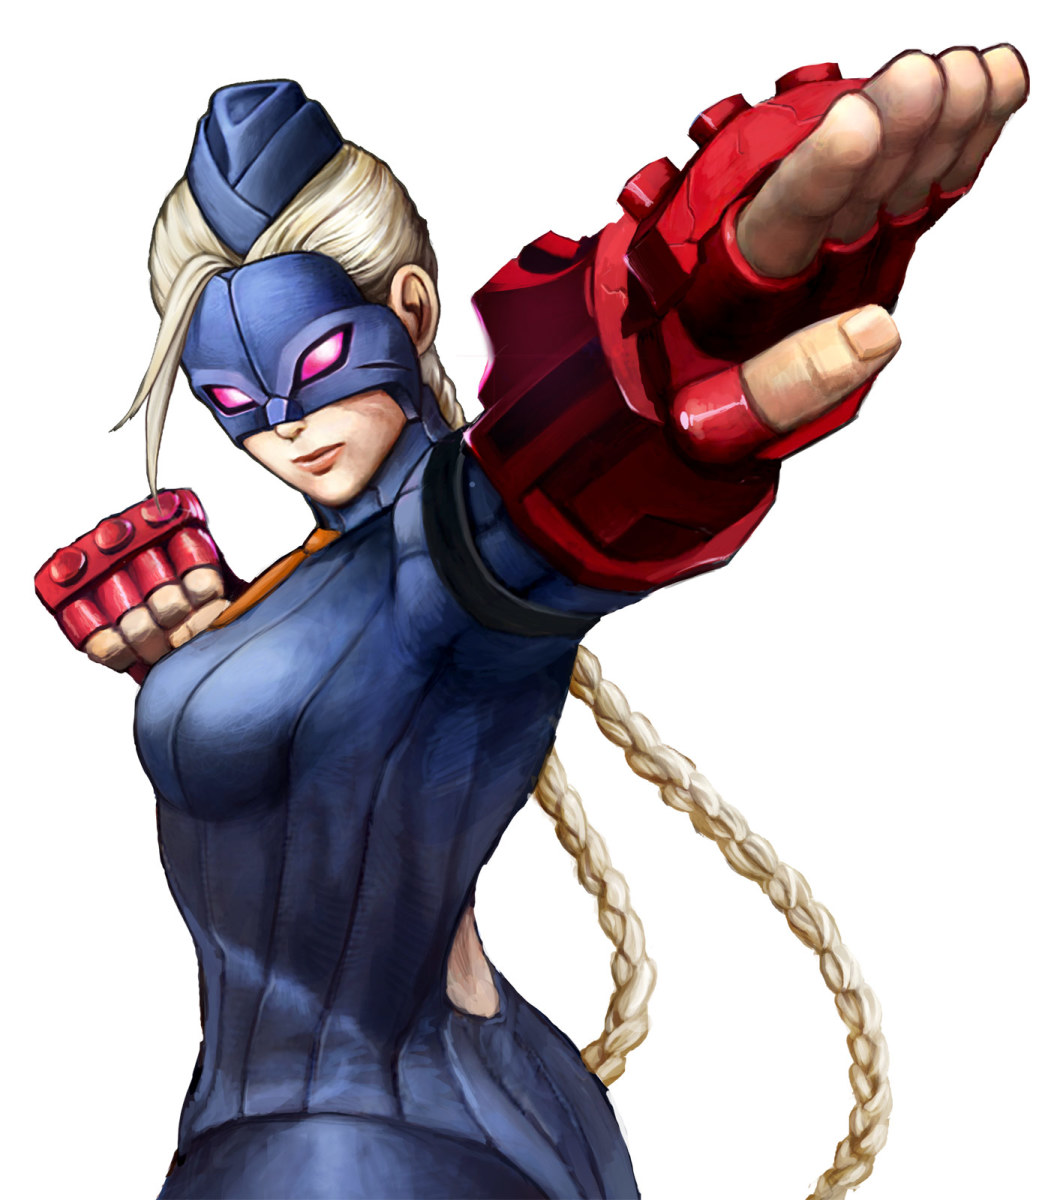 Decapre first appeared in Ultra Street Fighter IV.